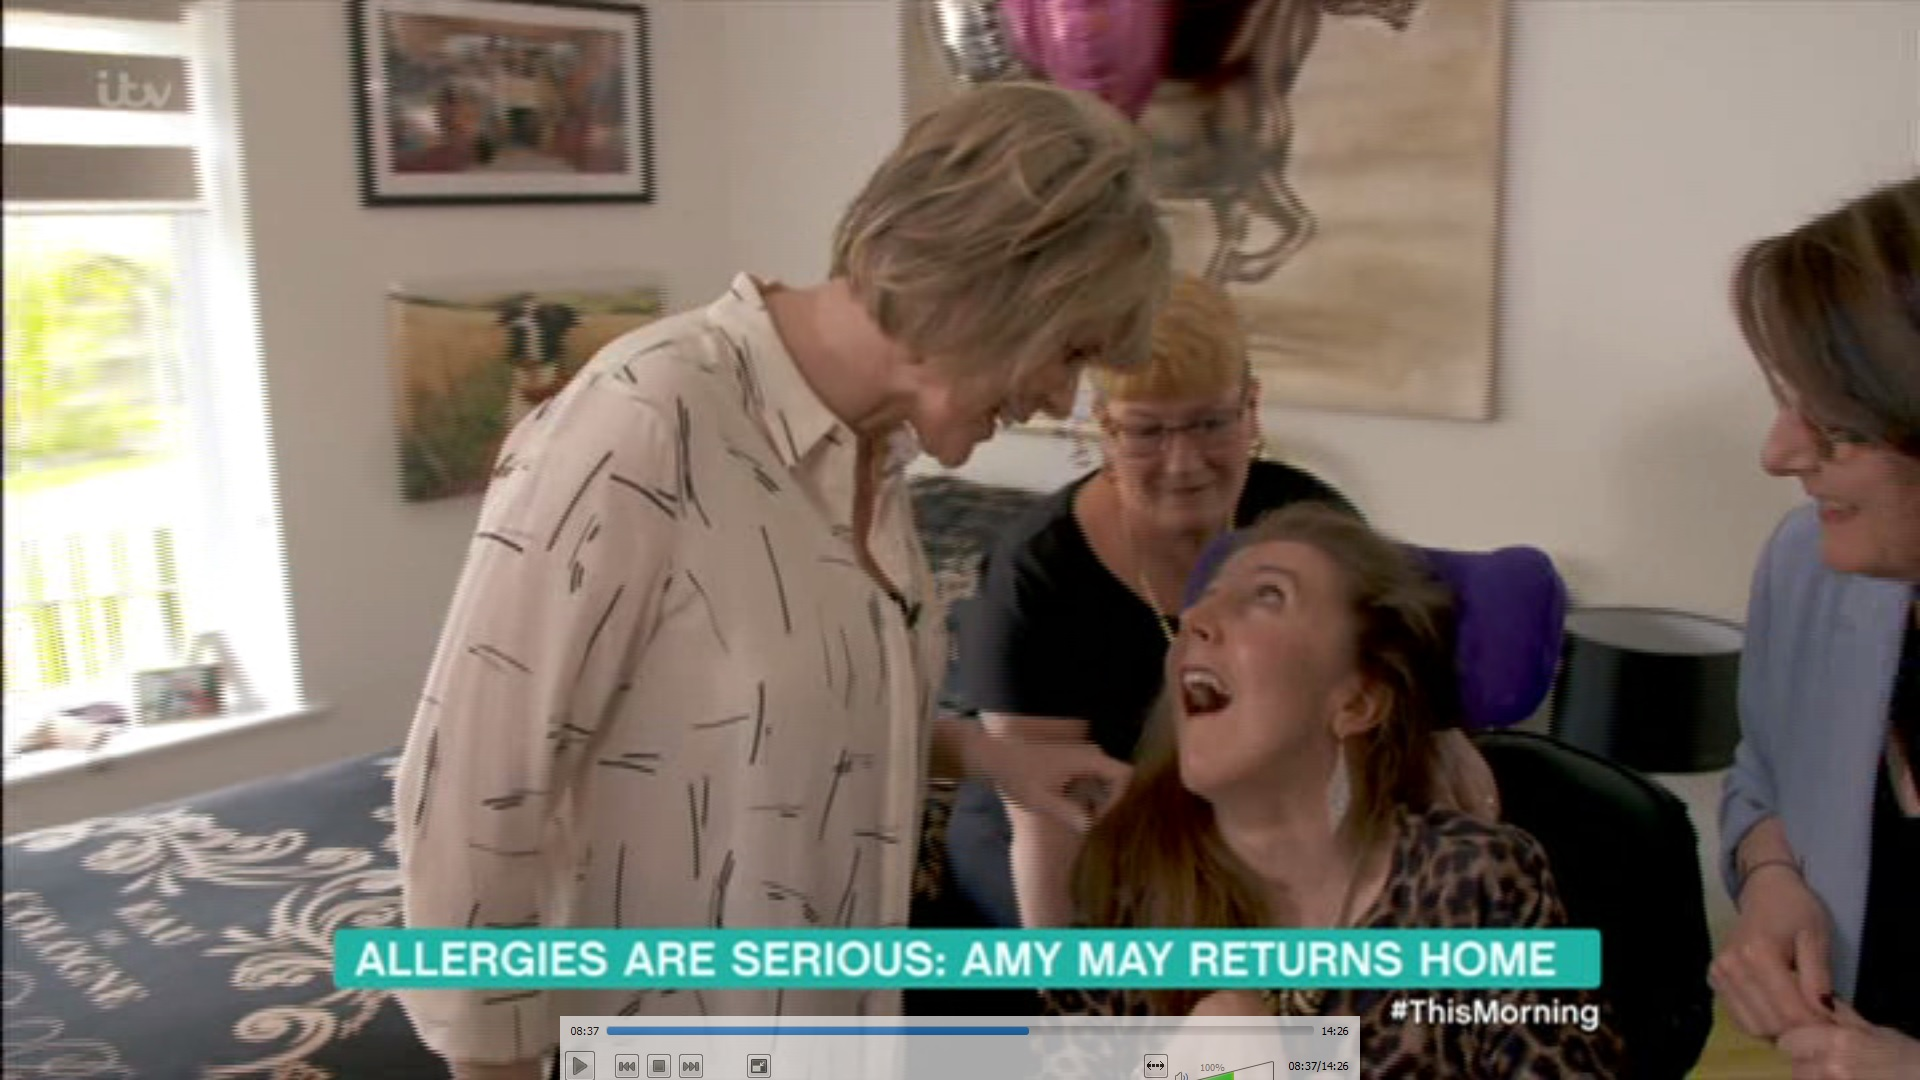 Ruth Langsford makes emotional visit to former colleague left brain injured from allergic reaction